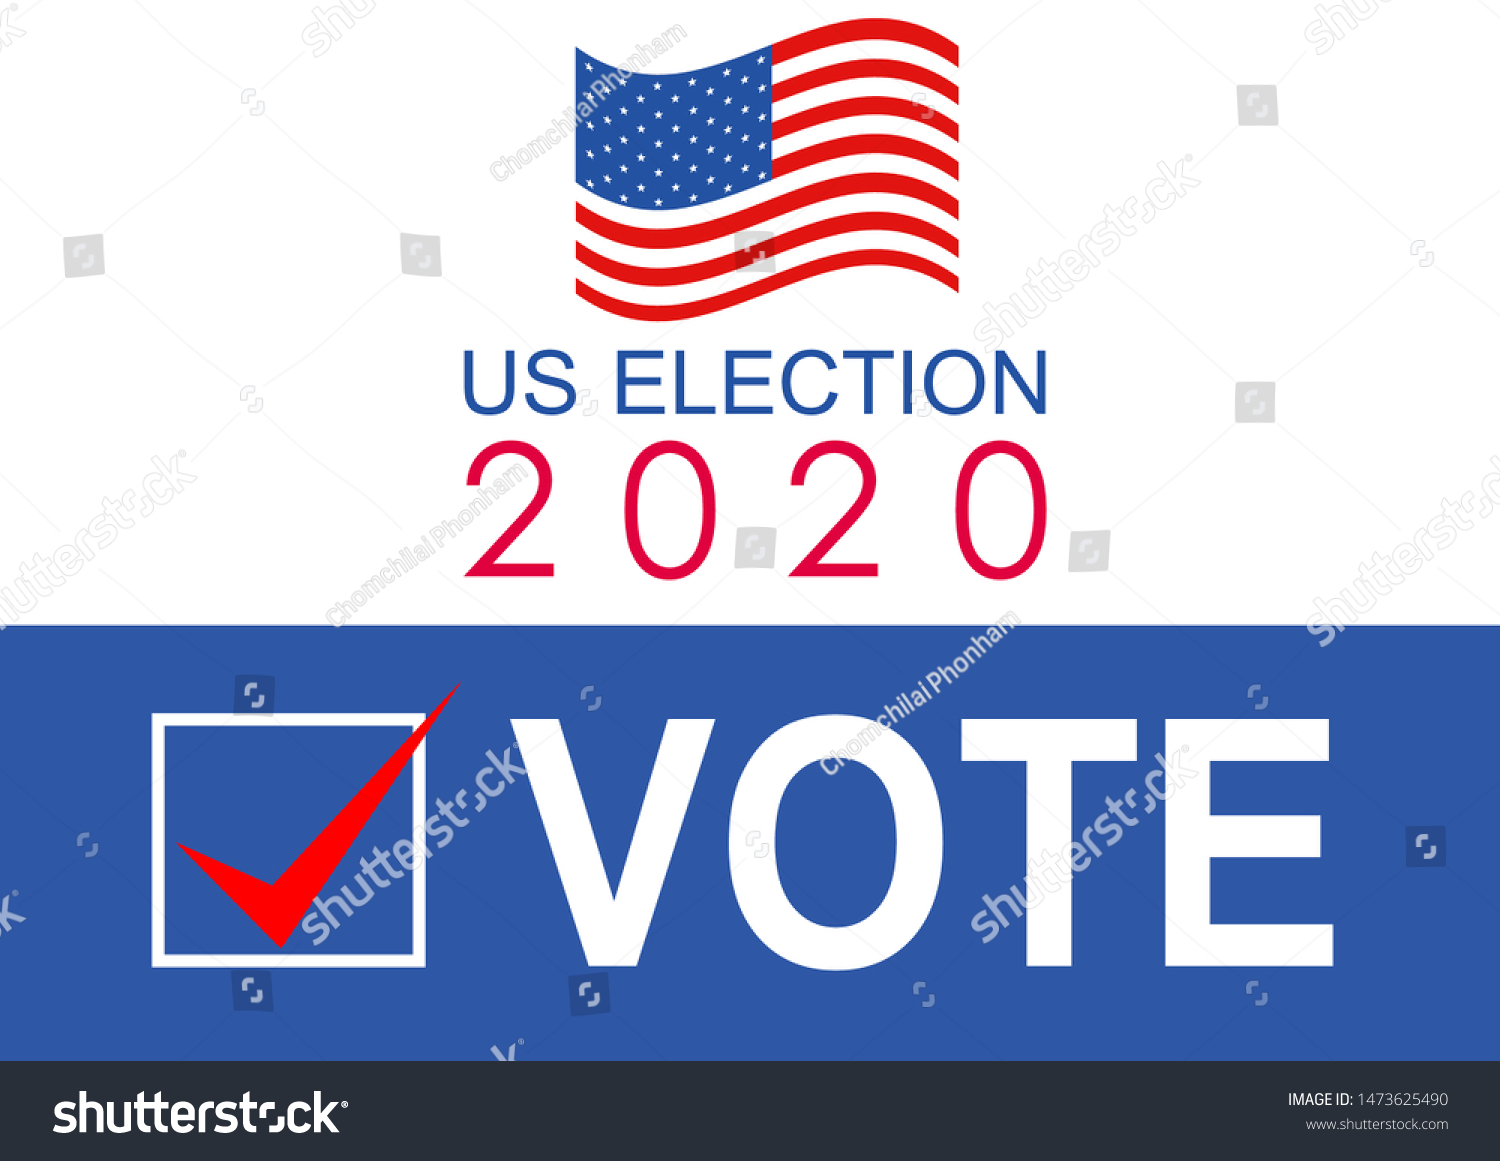 United States Presidential Election 2020 Vector Stock Vector Royalty Free 1473625490